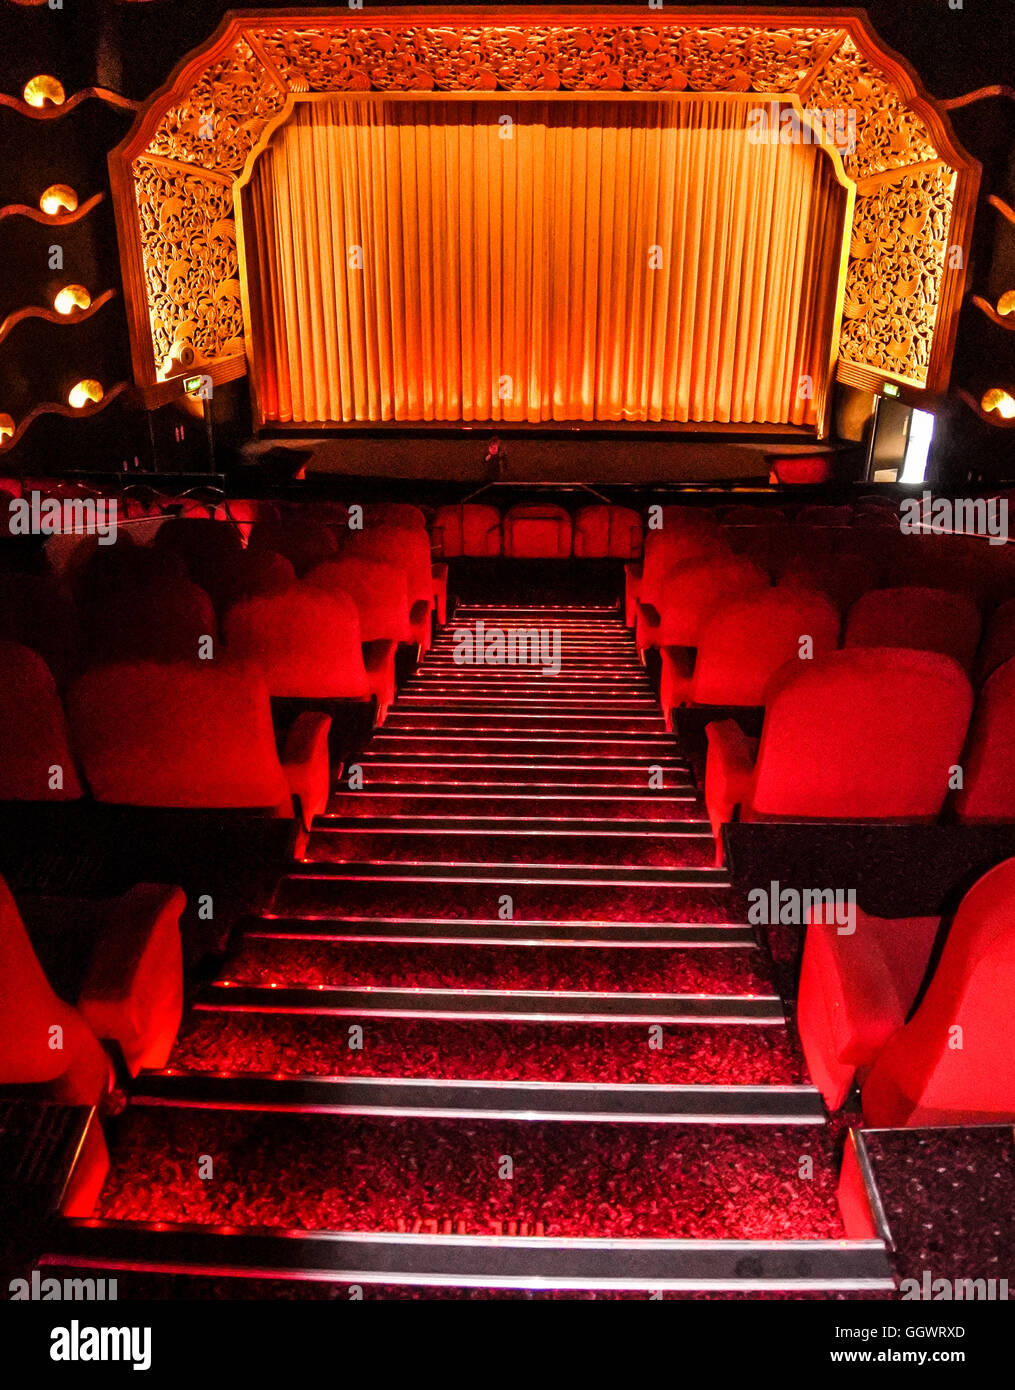 Cinema Seating Photos Amp Cinema Seating Images Alamy